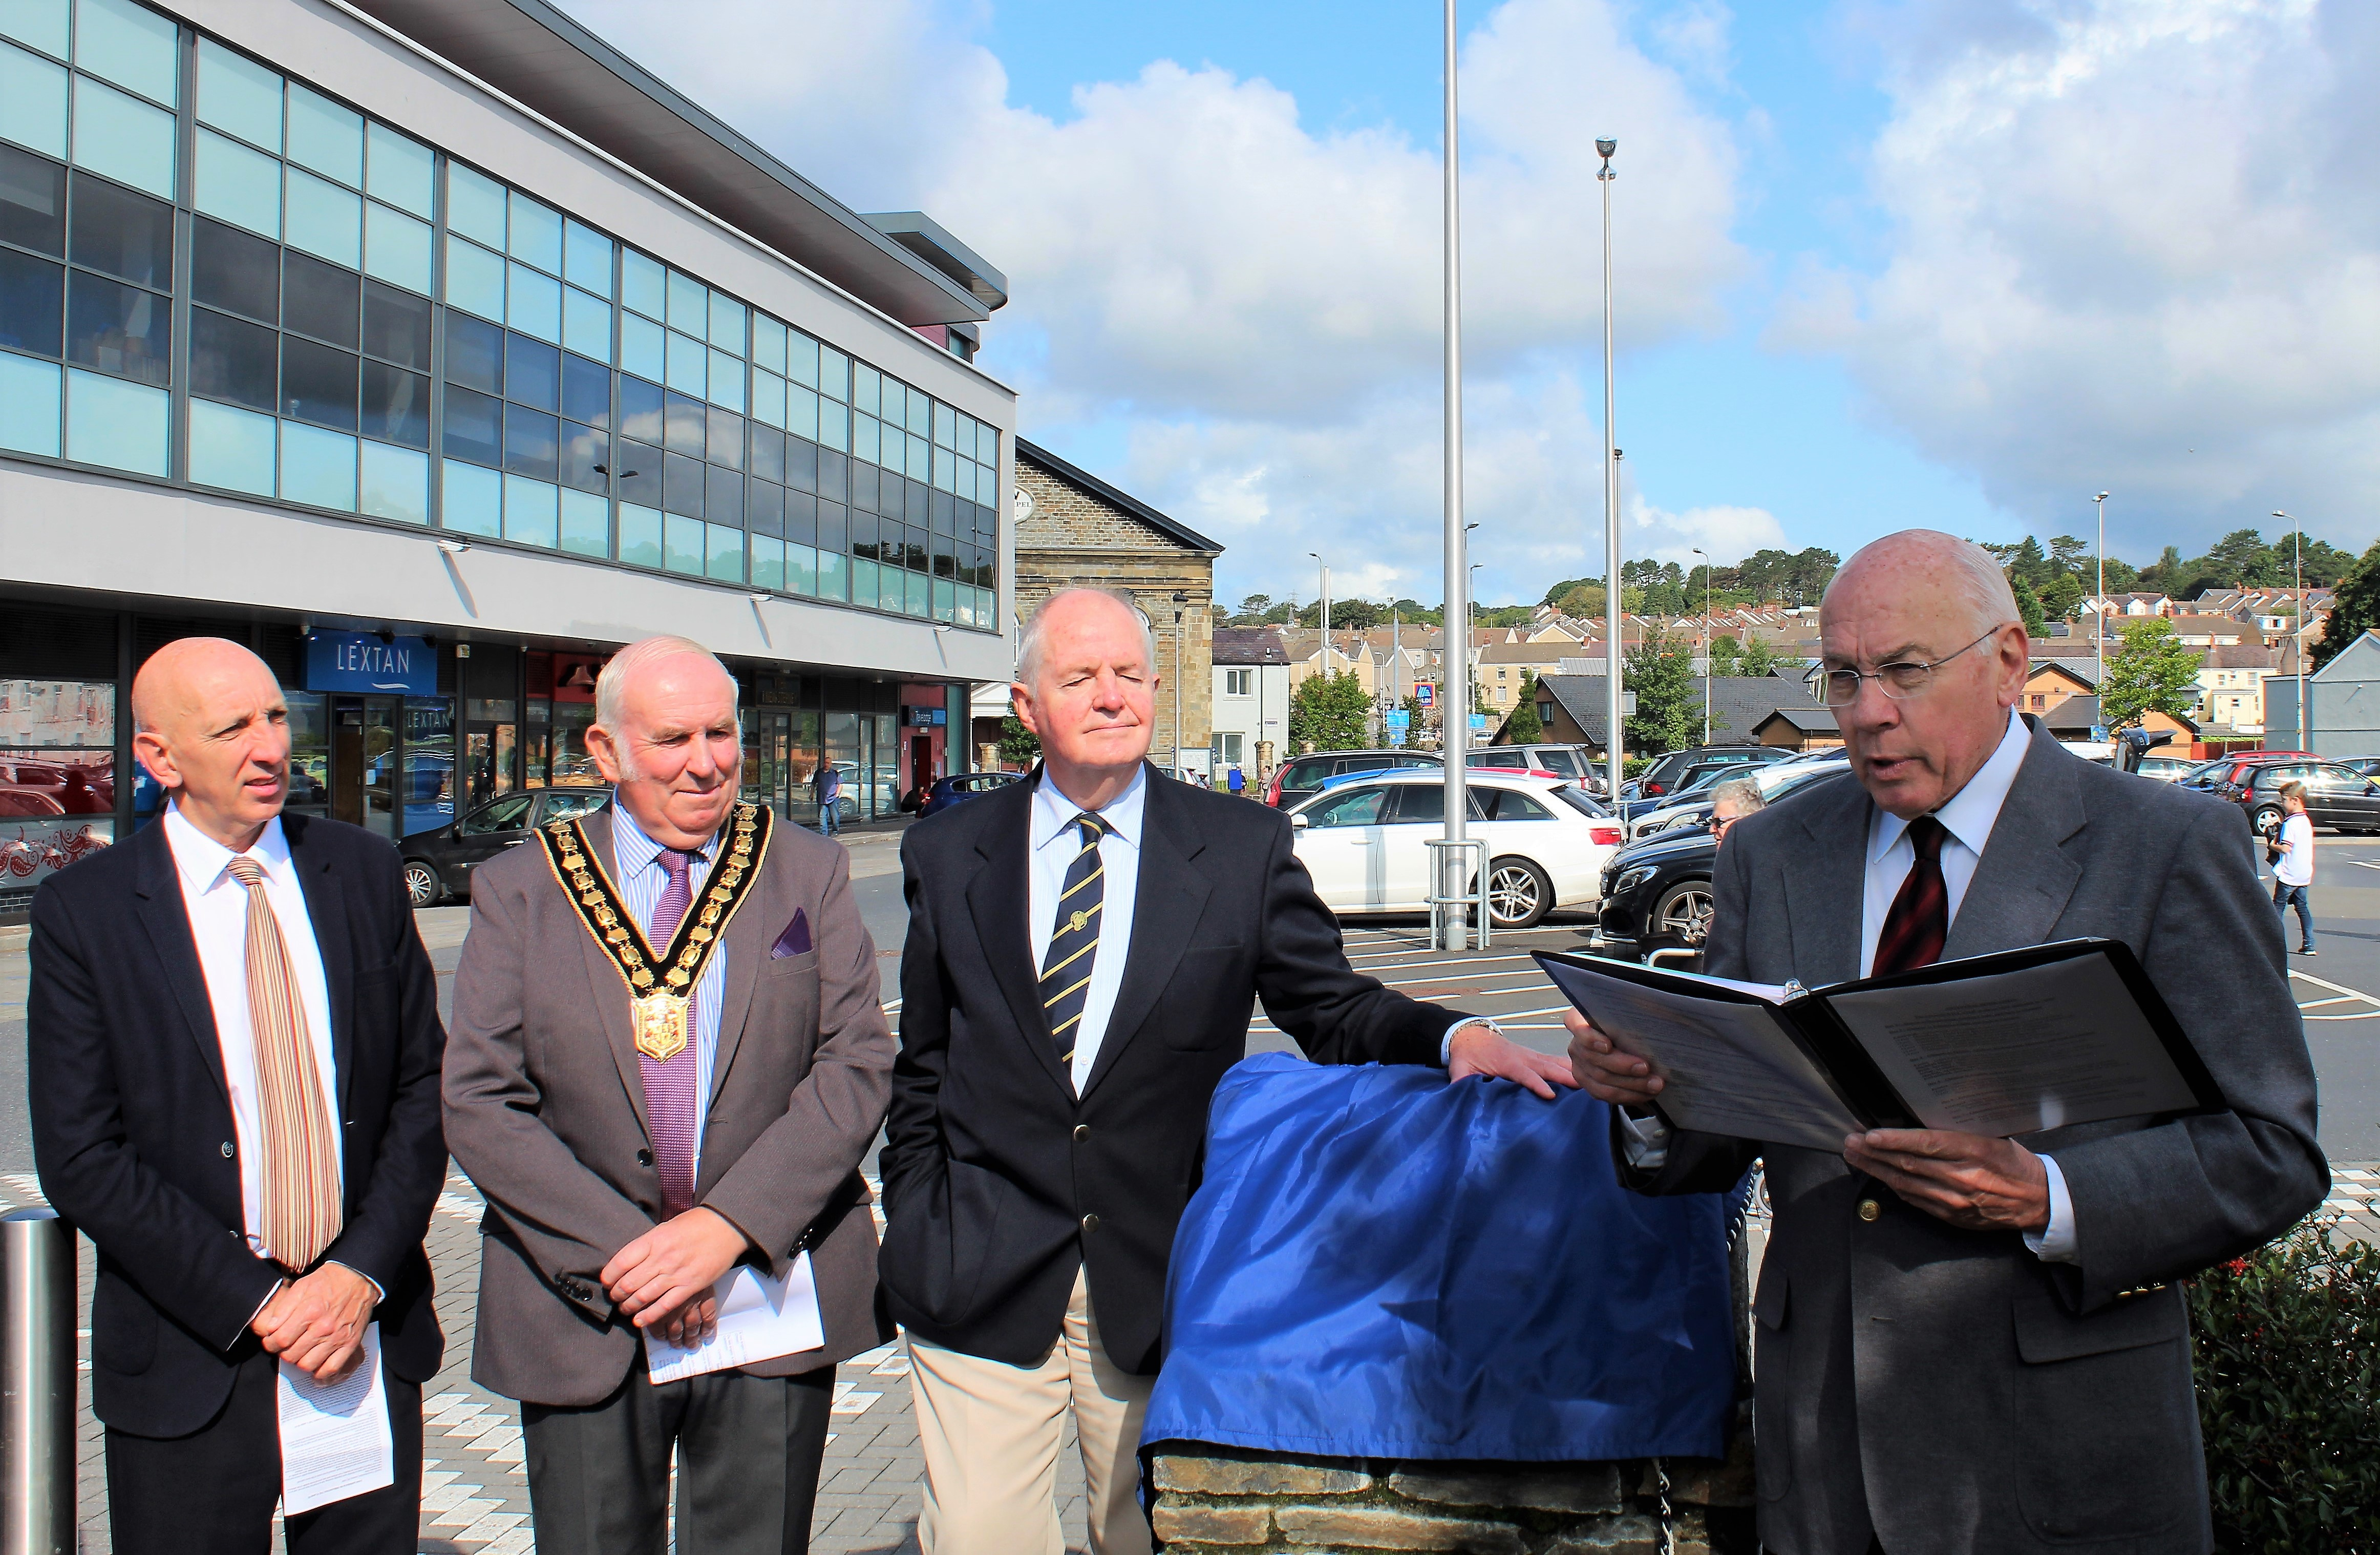 On the right, Dr. Ronald Dennis presents at the unveiling of the blue plaque to commemorate the historic Island Place Meeting House on Aug 25, 2018, in Llanelli, Wales. To his left stand a representative from Llanelli Community Heritage, the Chair of the Carmathenshire County Council, Councilor Mansel Charles, Plaid Cymru of Llanegwad, and Counselor W.E. Skinner, Labour, Bigyn Ward of Llanelli.